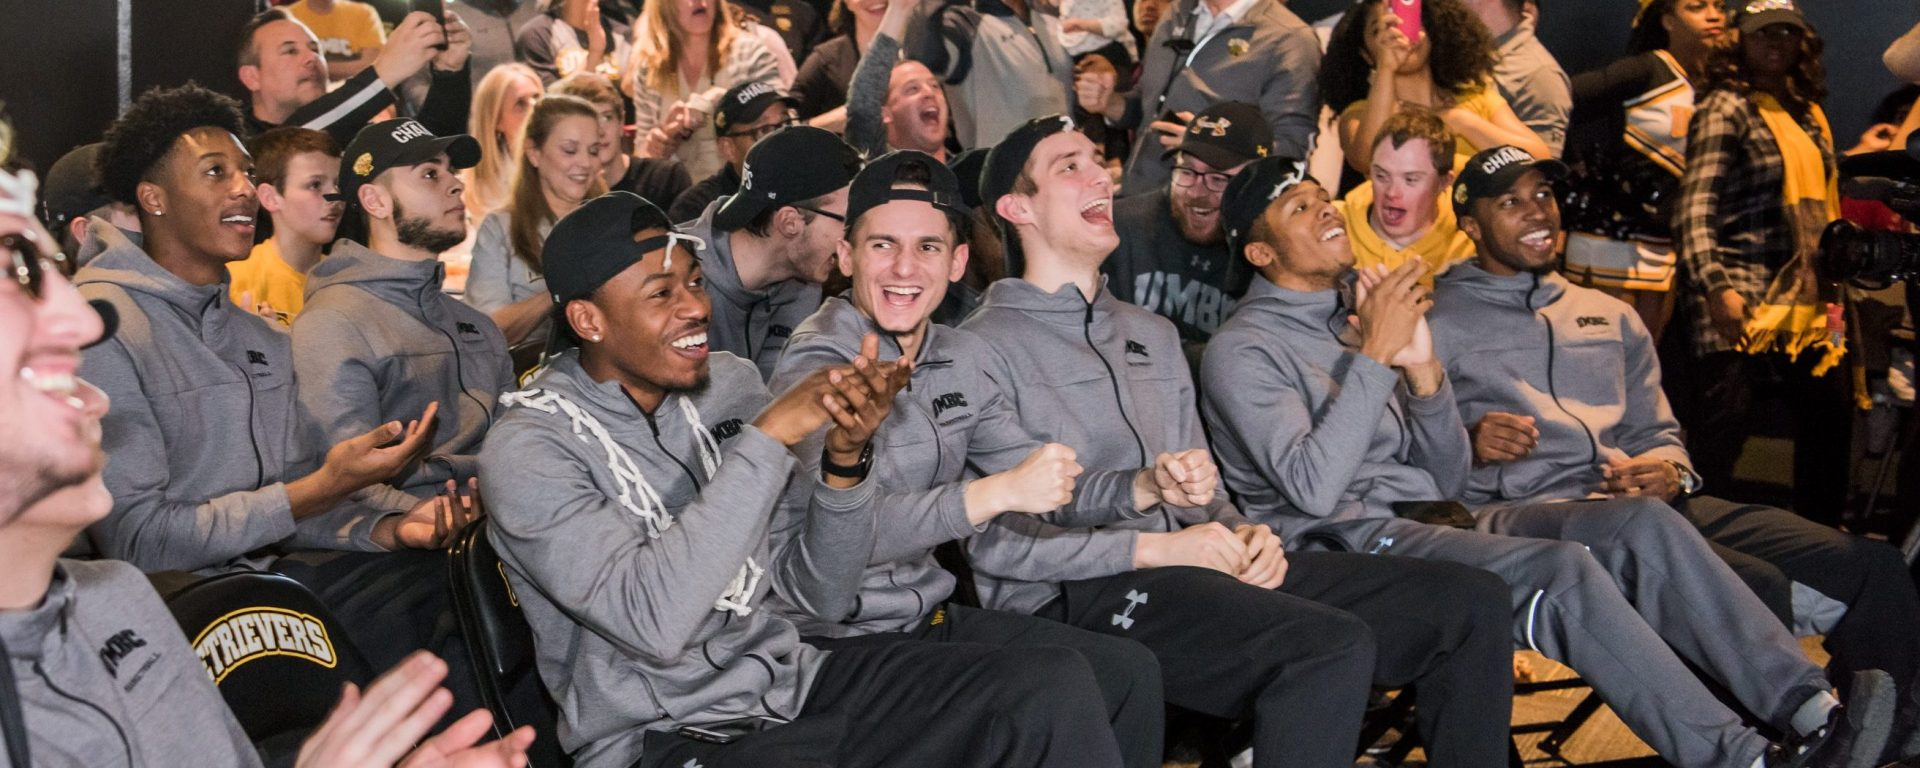 Basketball players seated, wearing gray jackets, smile while watching TV livestream.